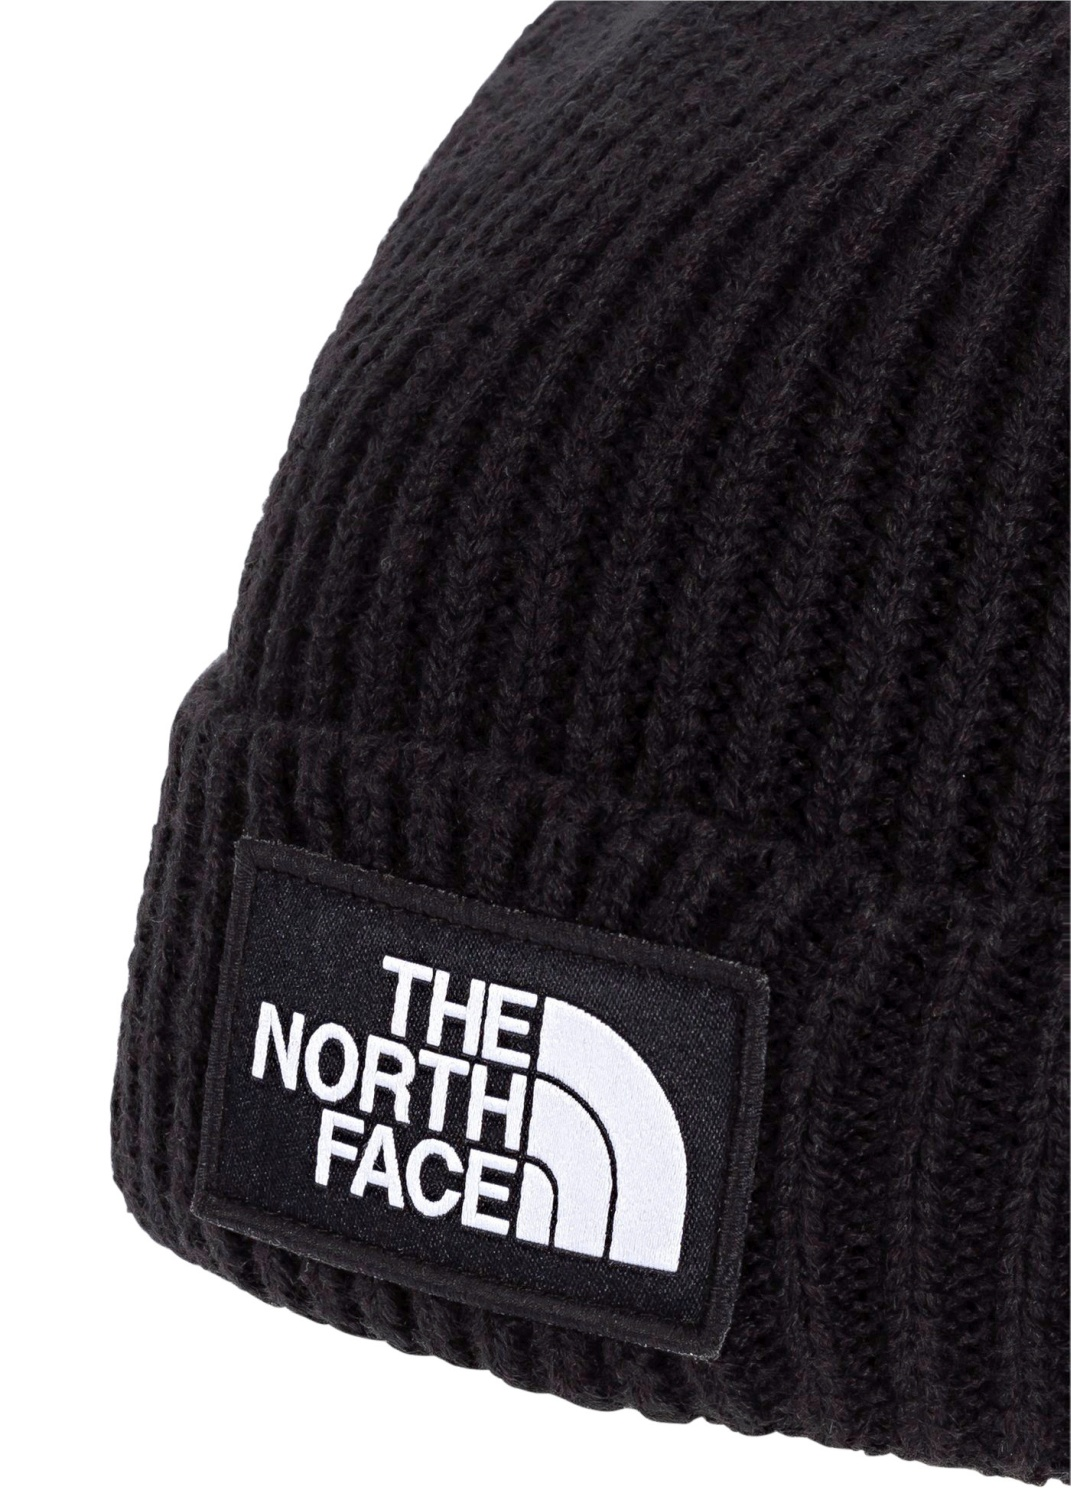 TNF LOGO BOX CUFF BEANIE image number 1